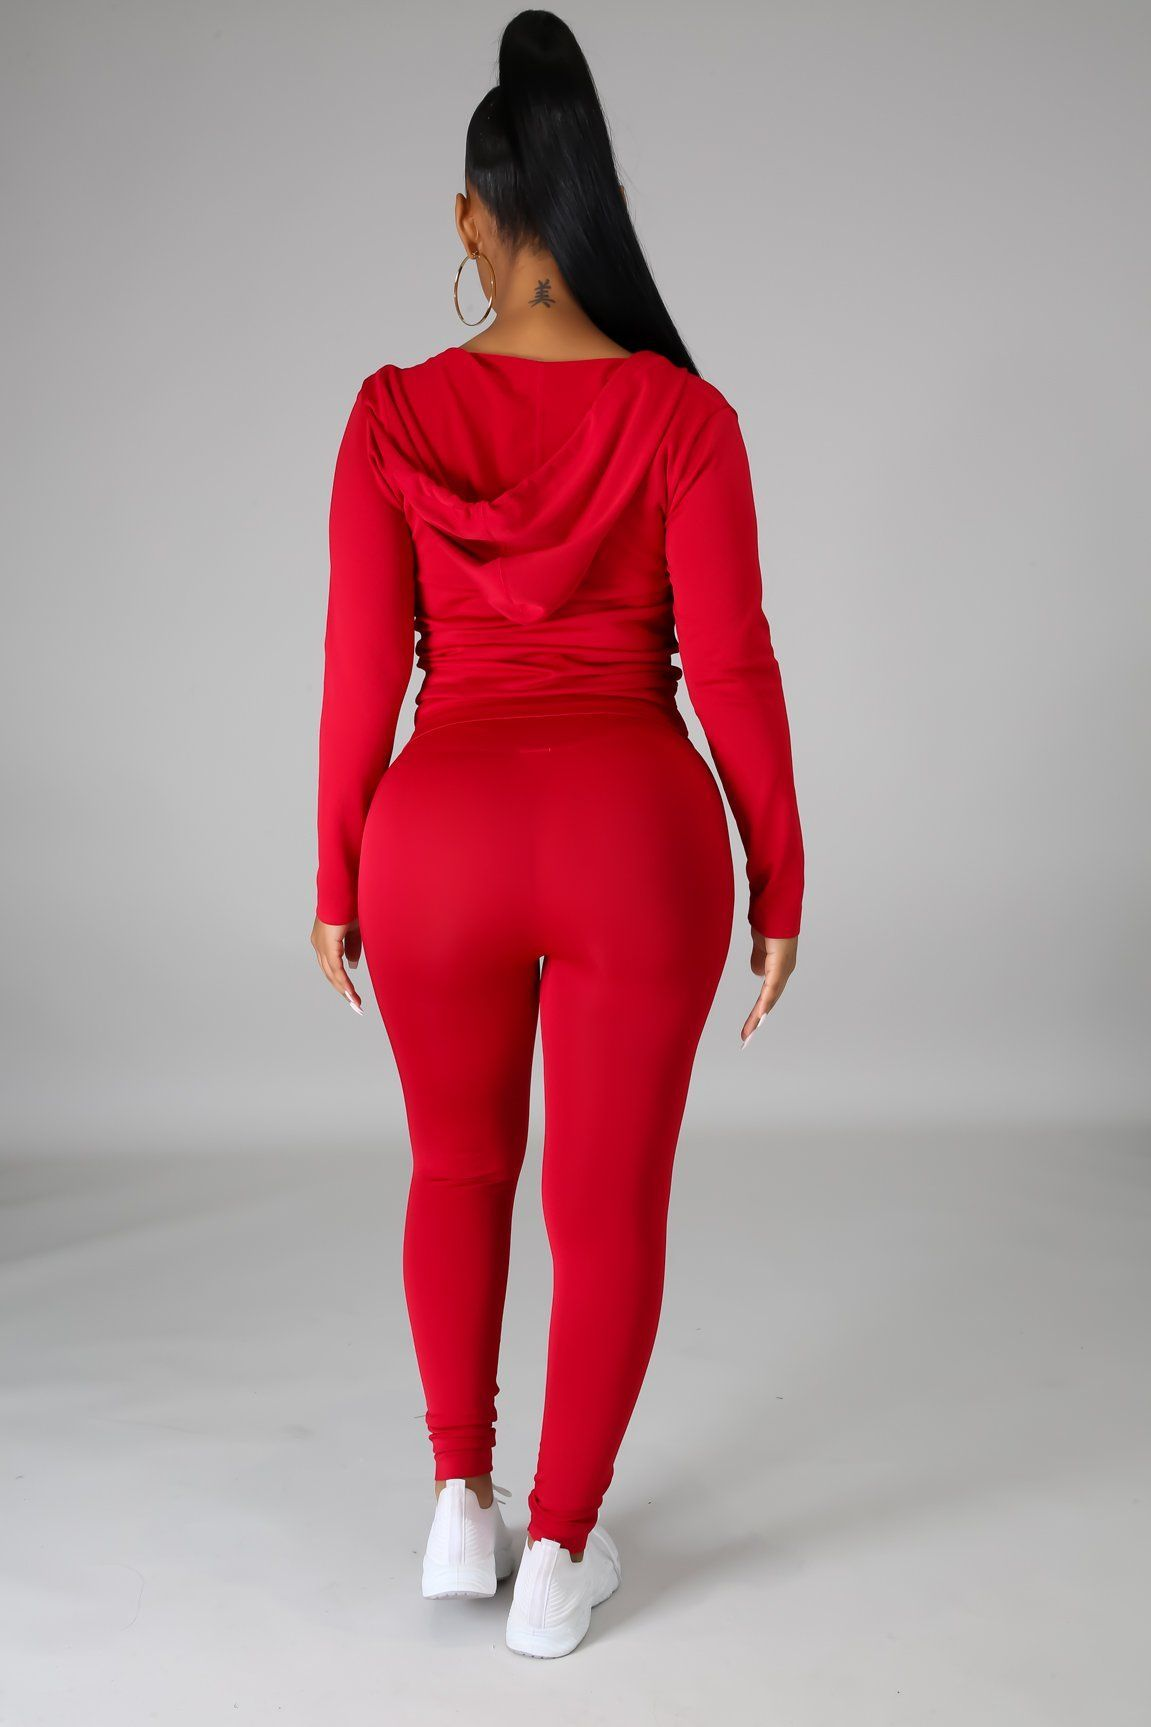 You Can Do It Legging Set - Red